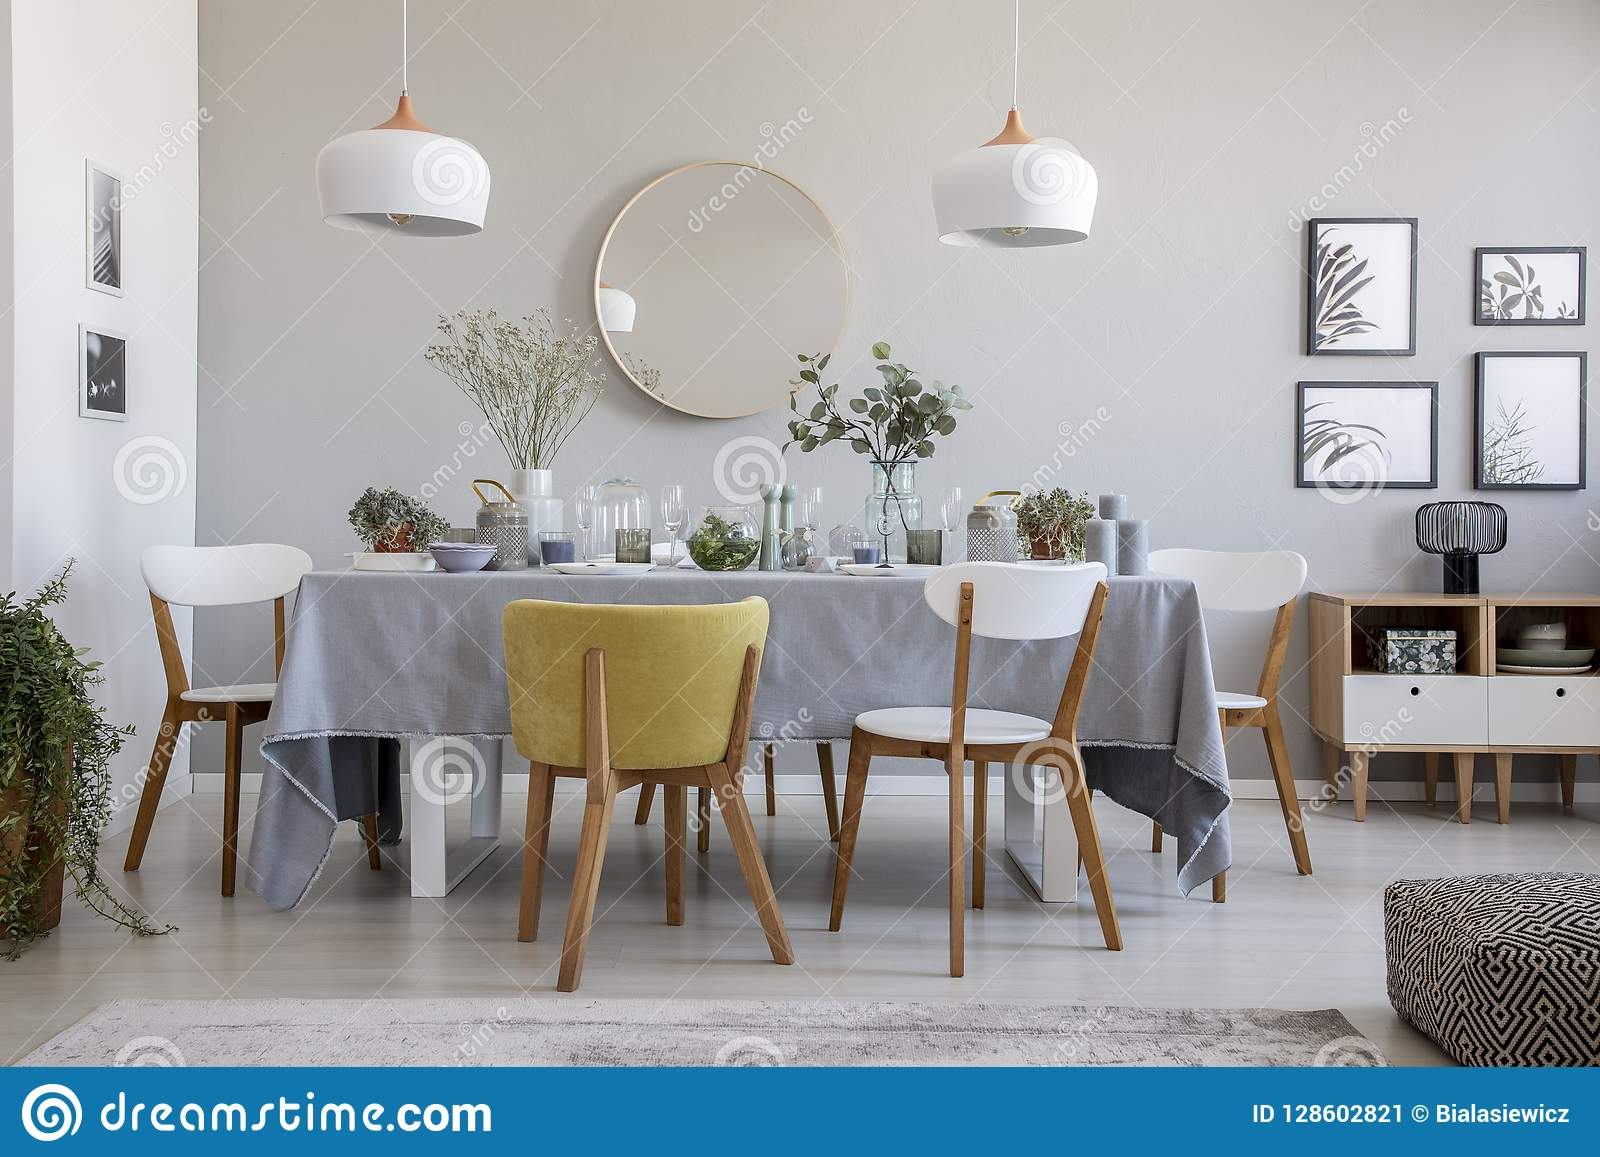 Elegant dining room interior with a laid table, chairs, mirror on a wall and lamps